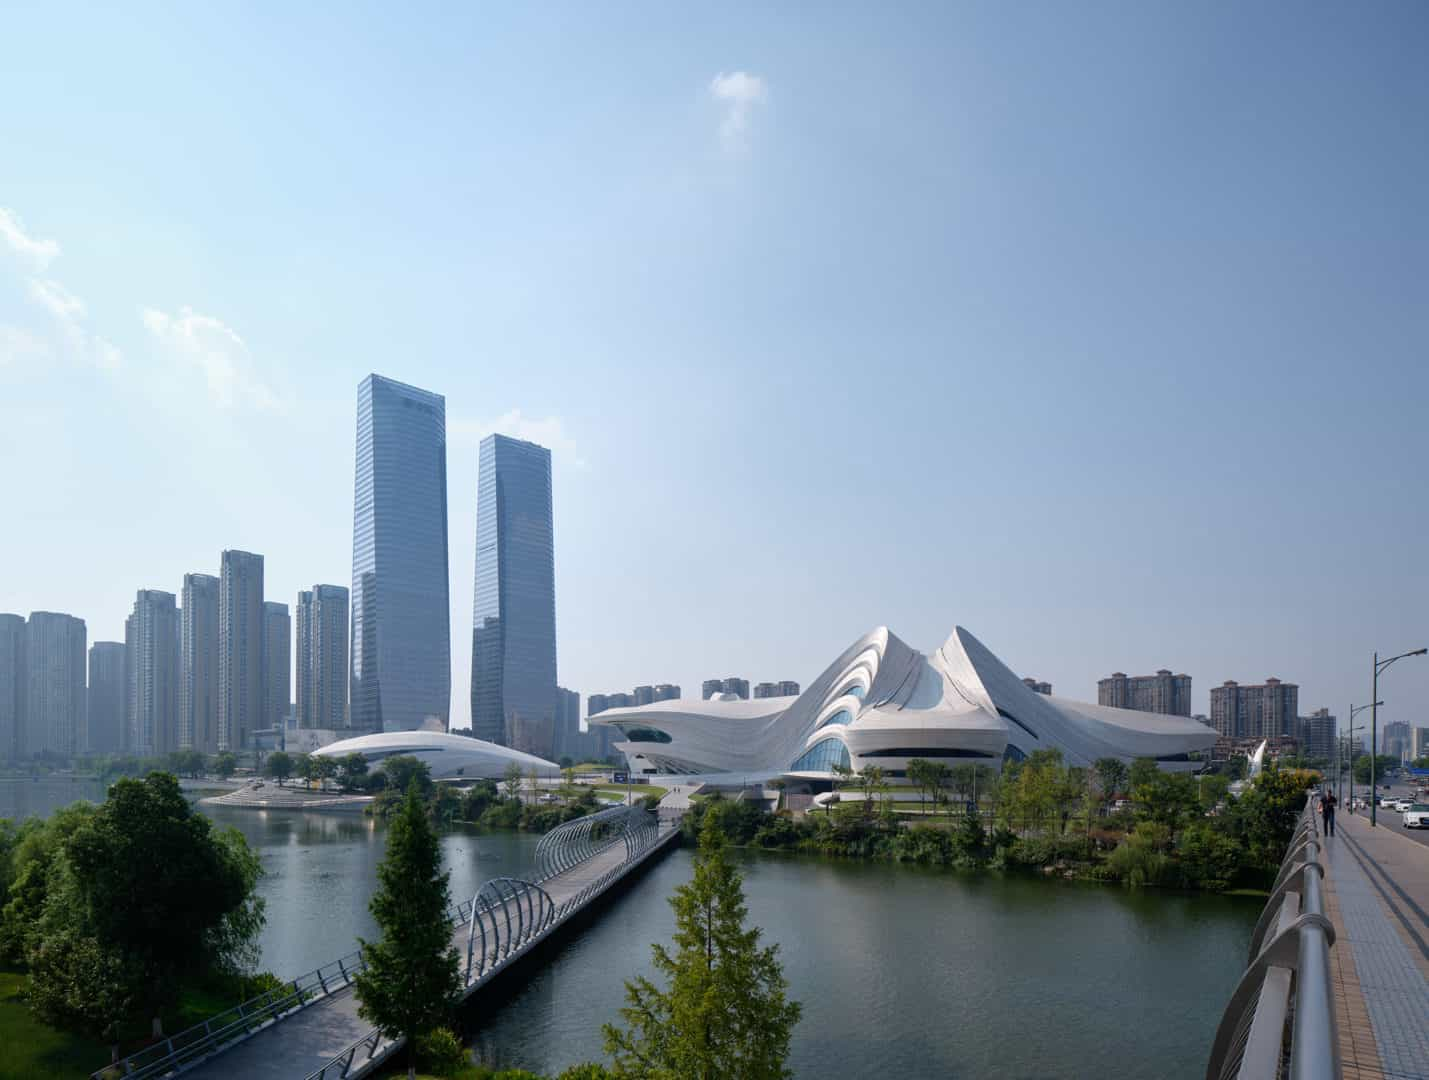 Zaha Hadid Projects -World Architecture Community Awards 2020 - Changsha Meixihu International Culture and Art Centre - 2